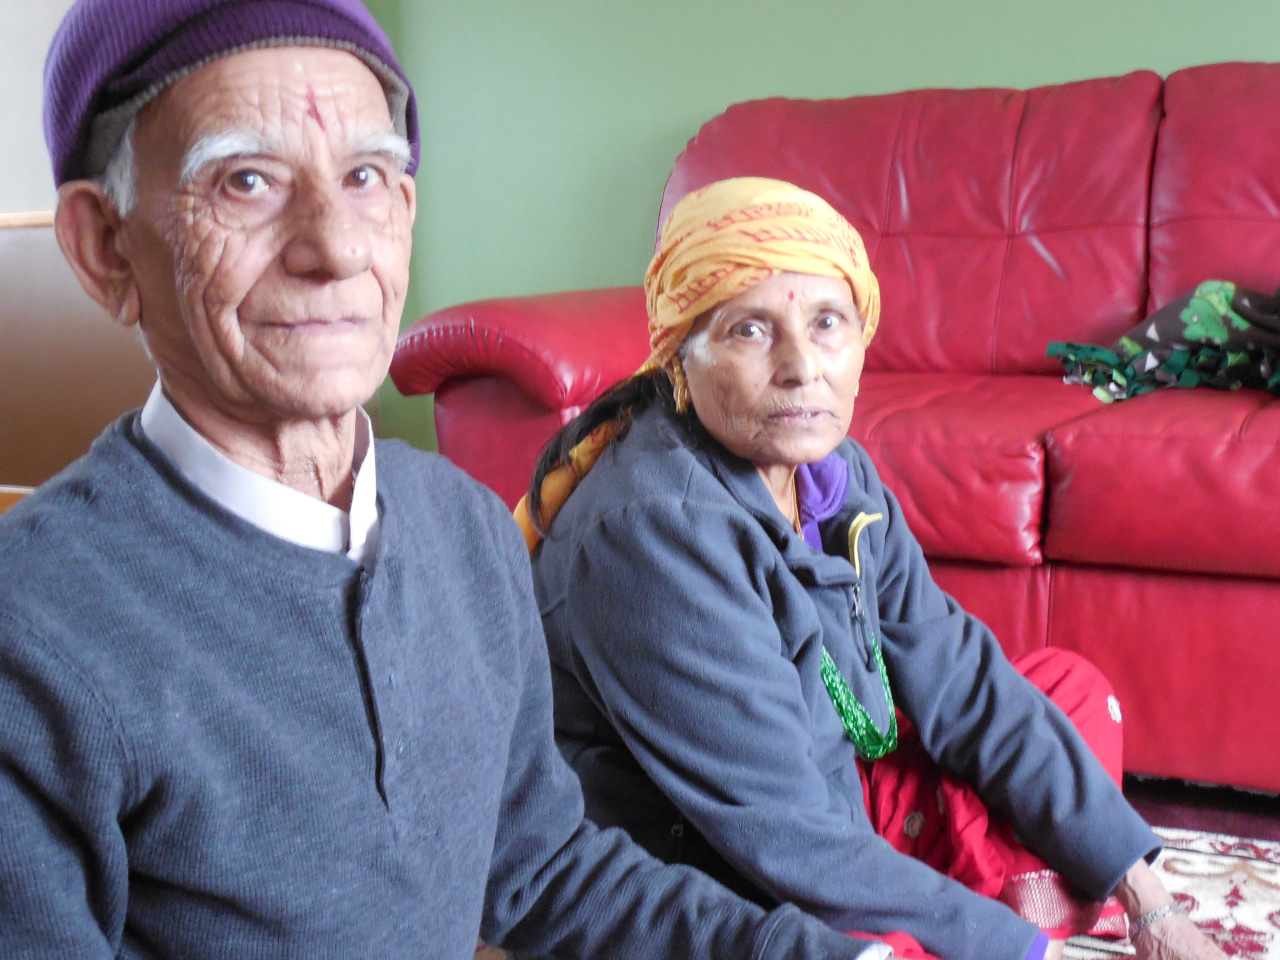 Ganga married Jashoda through an arranged marriage, which is custom in Bhutan. Ganga and Jashoda had five sons and two daughters while living on their ten-acre farm in Bhutan, before they were forced to leave the country. They have been married 63 years.